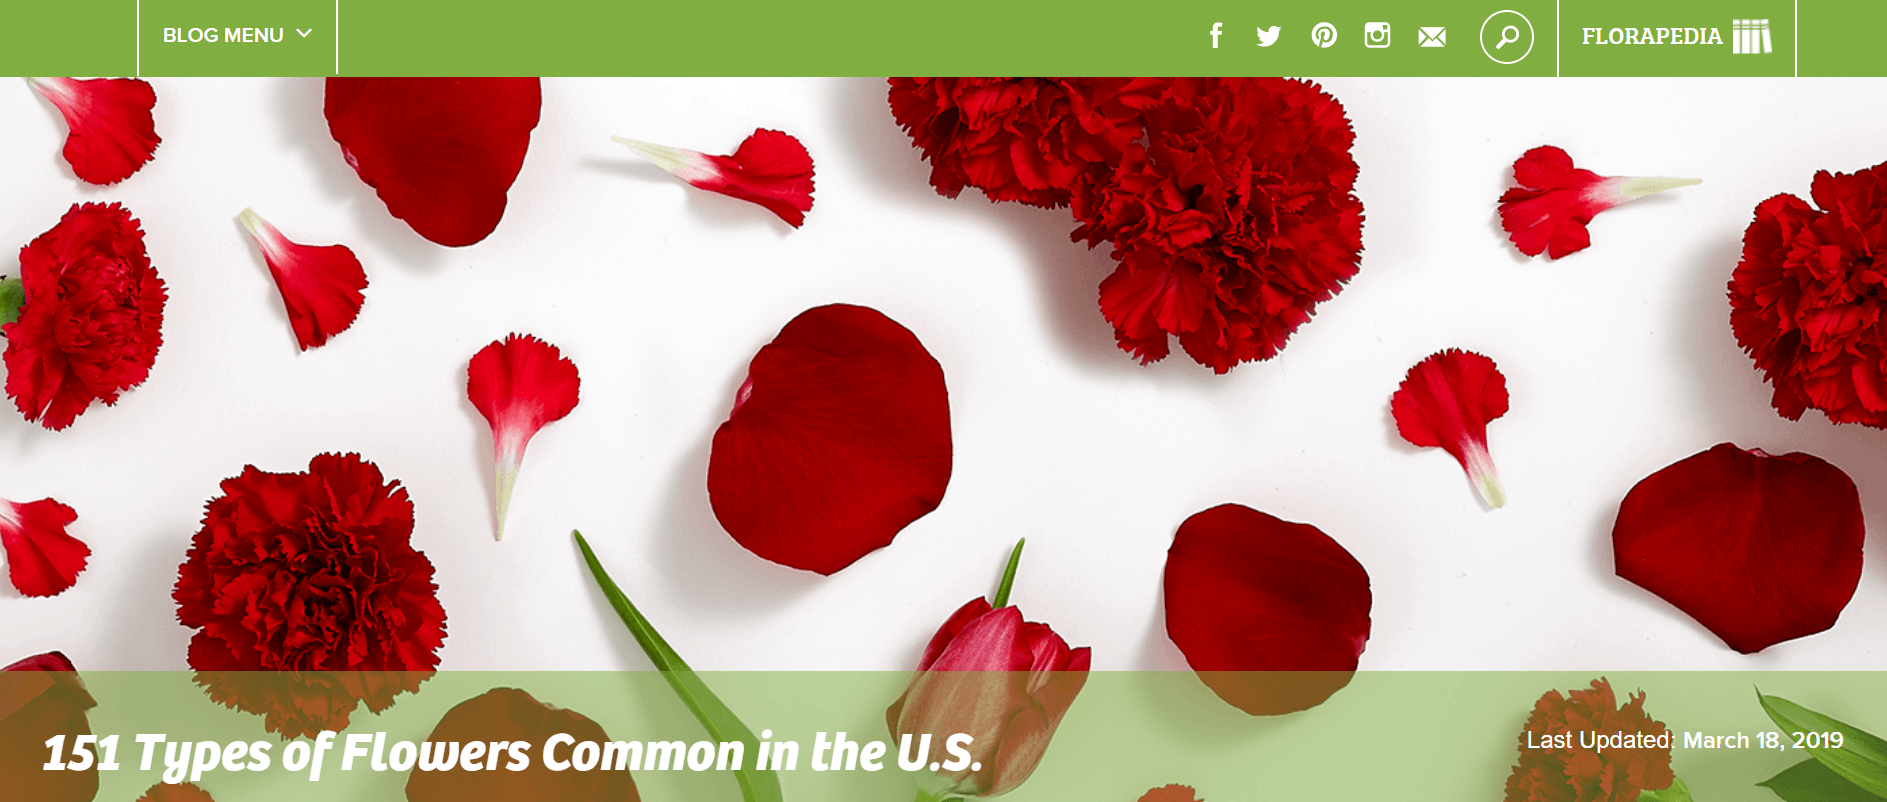 ProFlowers Ecommerce Content Marketing Examples